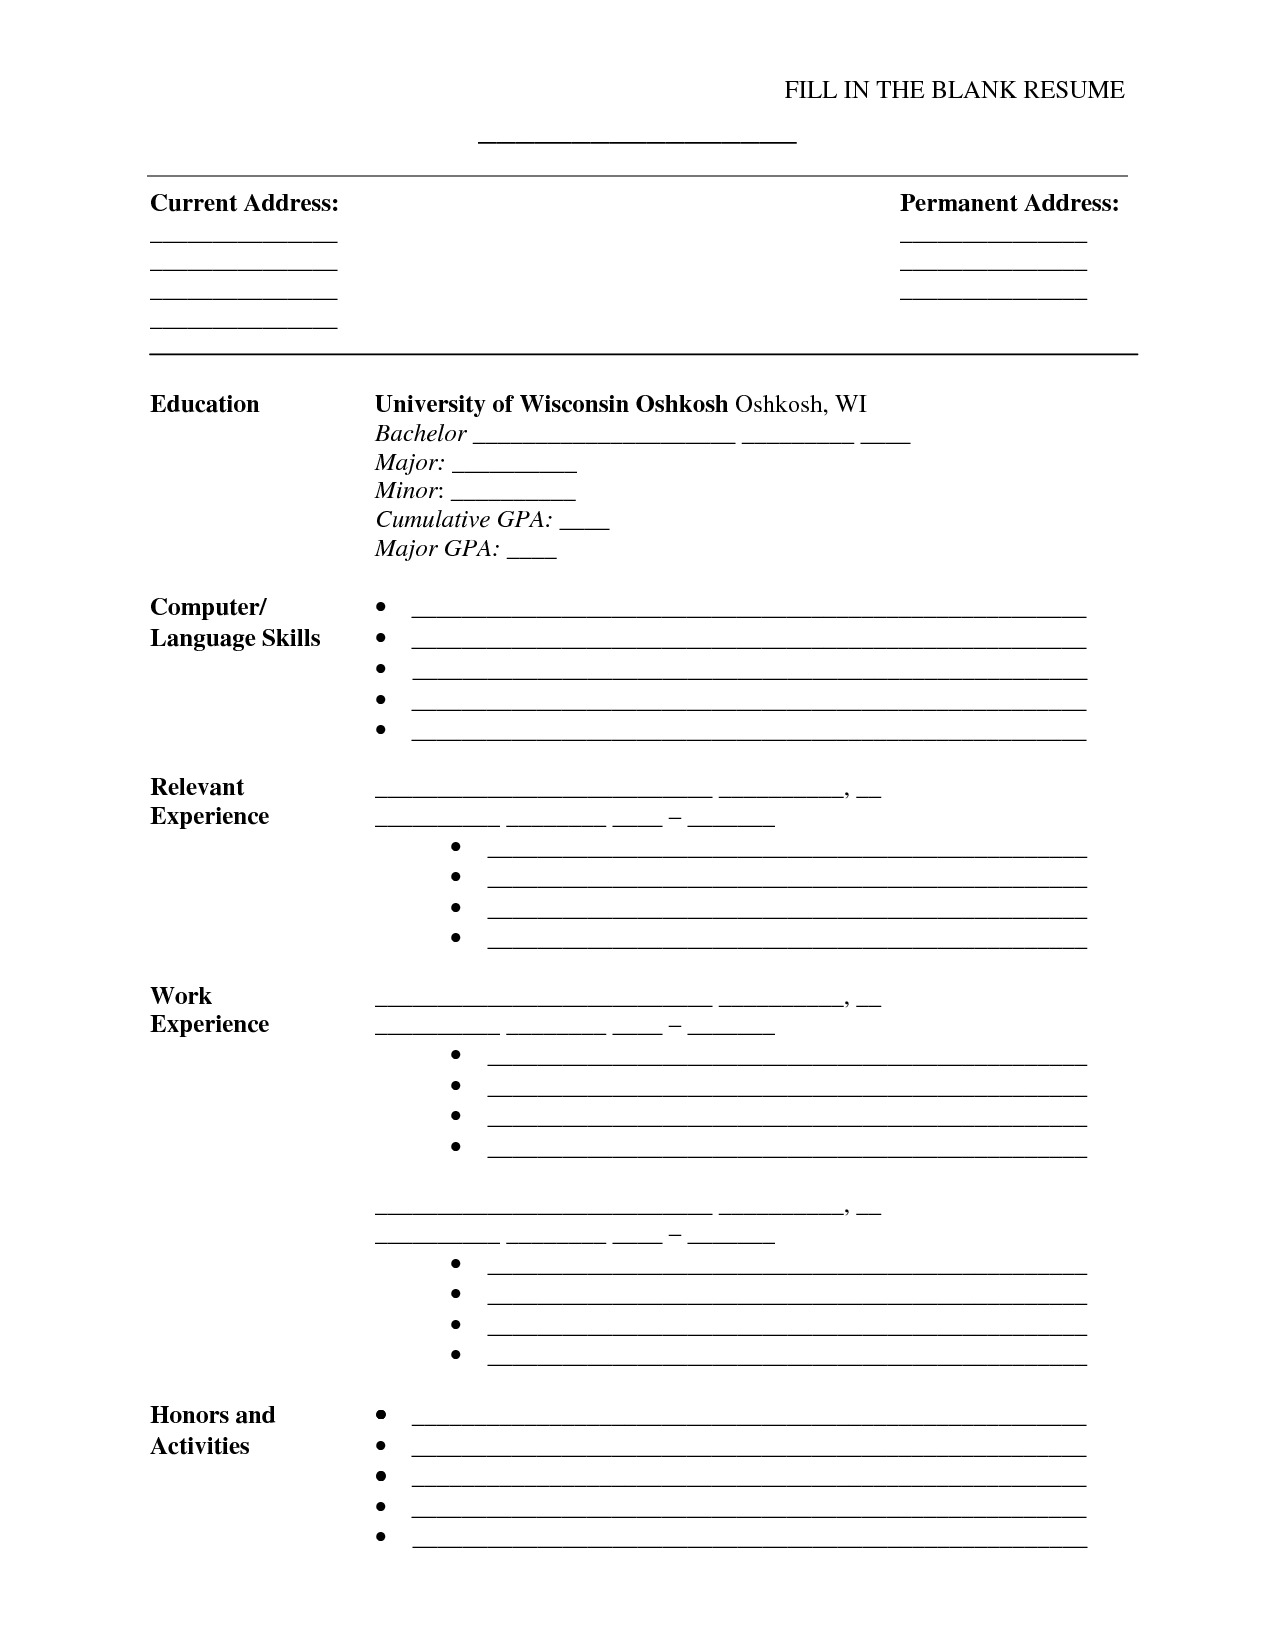 fill in the blank resume pdf http www resumecareer info fill